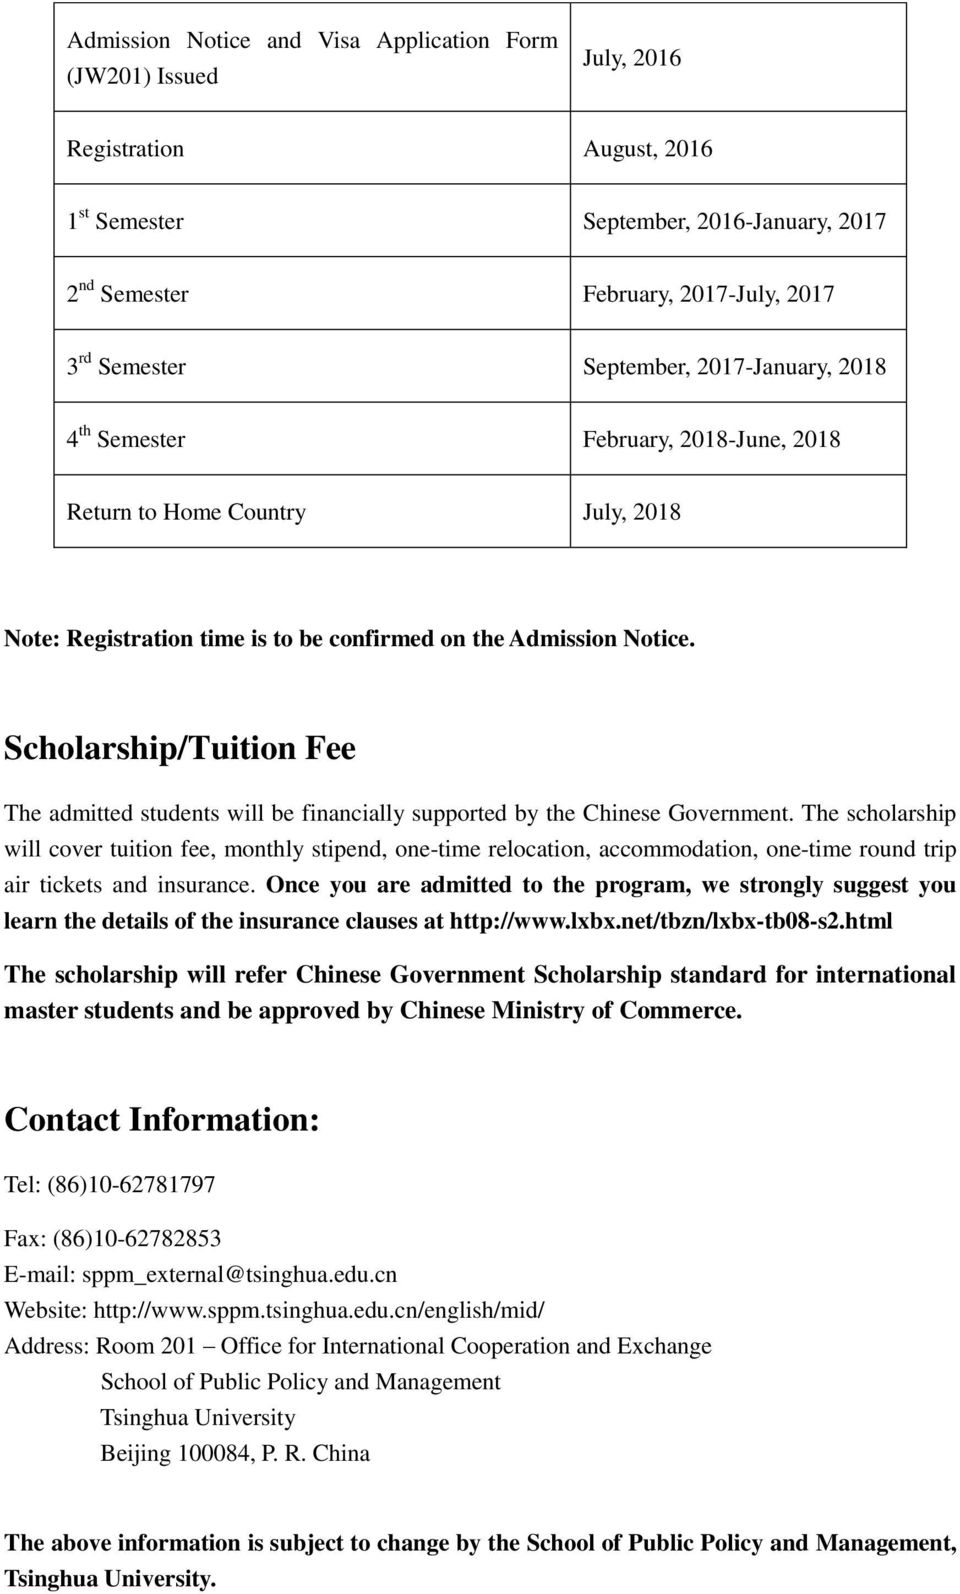 Scholarship/Tuition Fee The admitted students will be financially supported by the Chinese Government.